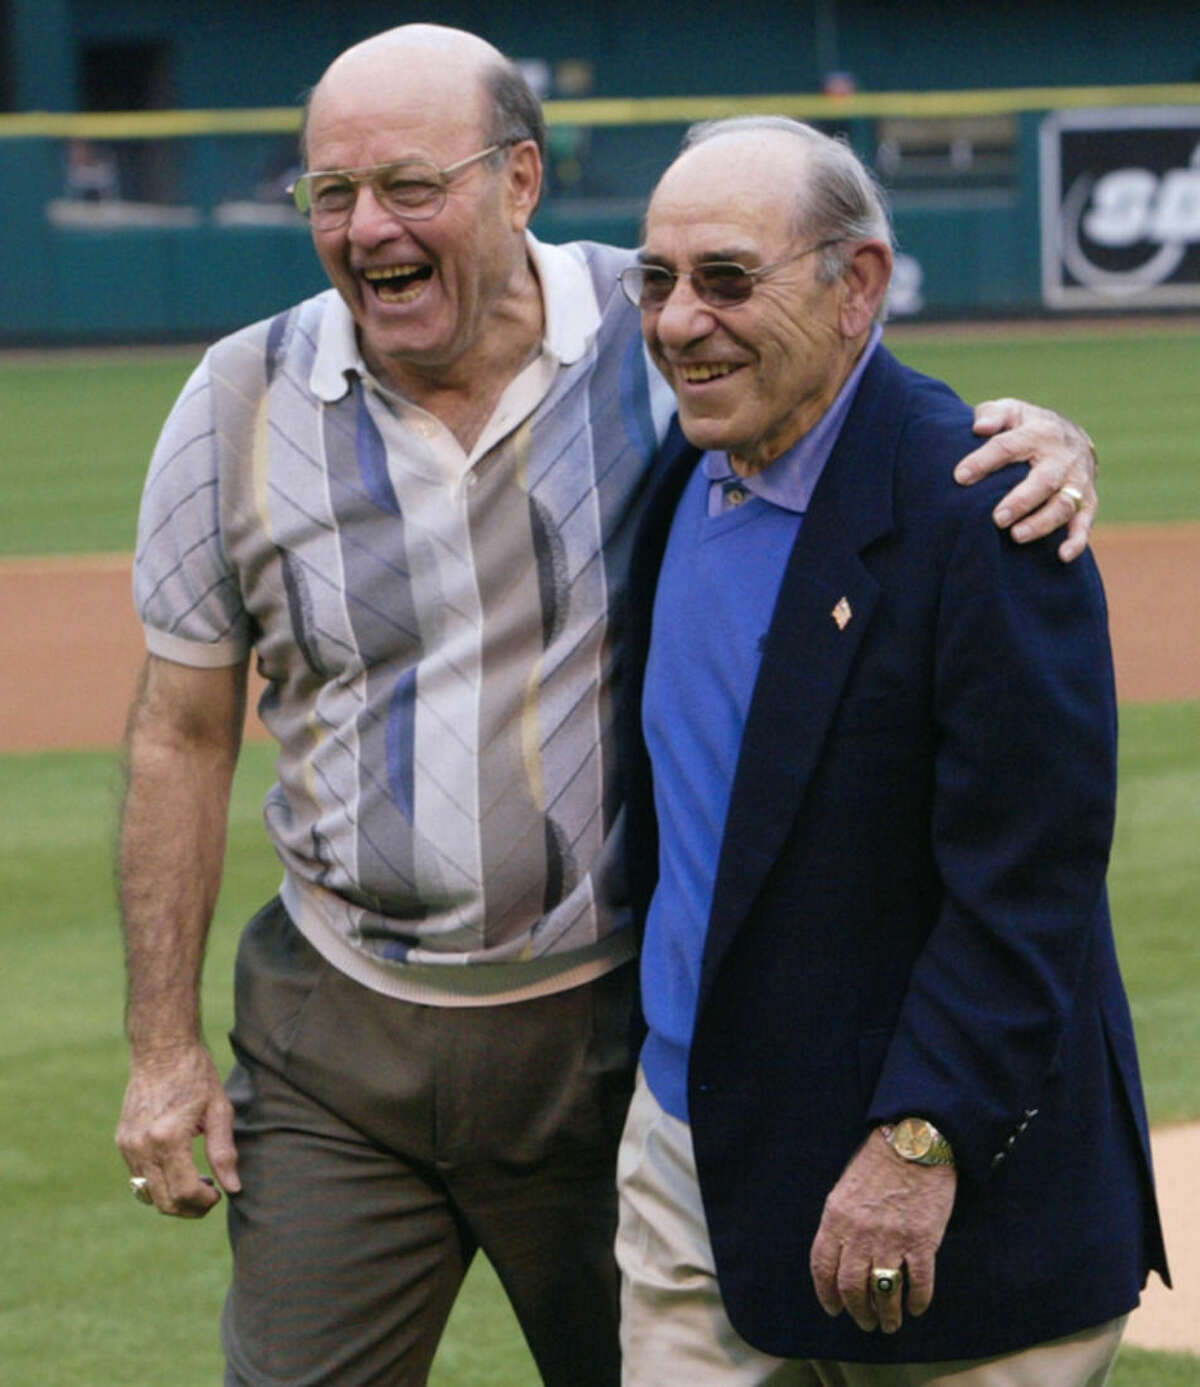 FILE - In this May 31, 2003, file photo, baseball Hall-of-Famers Joe Garagiola, left, and Yogi Berra share a moment after throwing out the first pitch before a game between the Pittsburgh Pirates and St. Louis Cardinals, in St. Louis. Former big league catcher and popular broadcaster Joe Garagiola has died. He was 90. The Arizona Diamondbacks say Garagiola died Wednesday, March 23, 2016. He had been in ill health in recent years.(AP Photo/Tom Gannam, File)